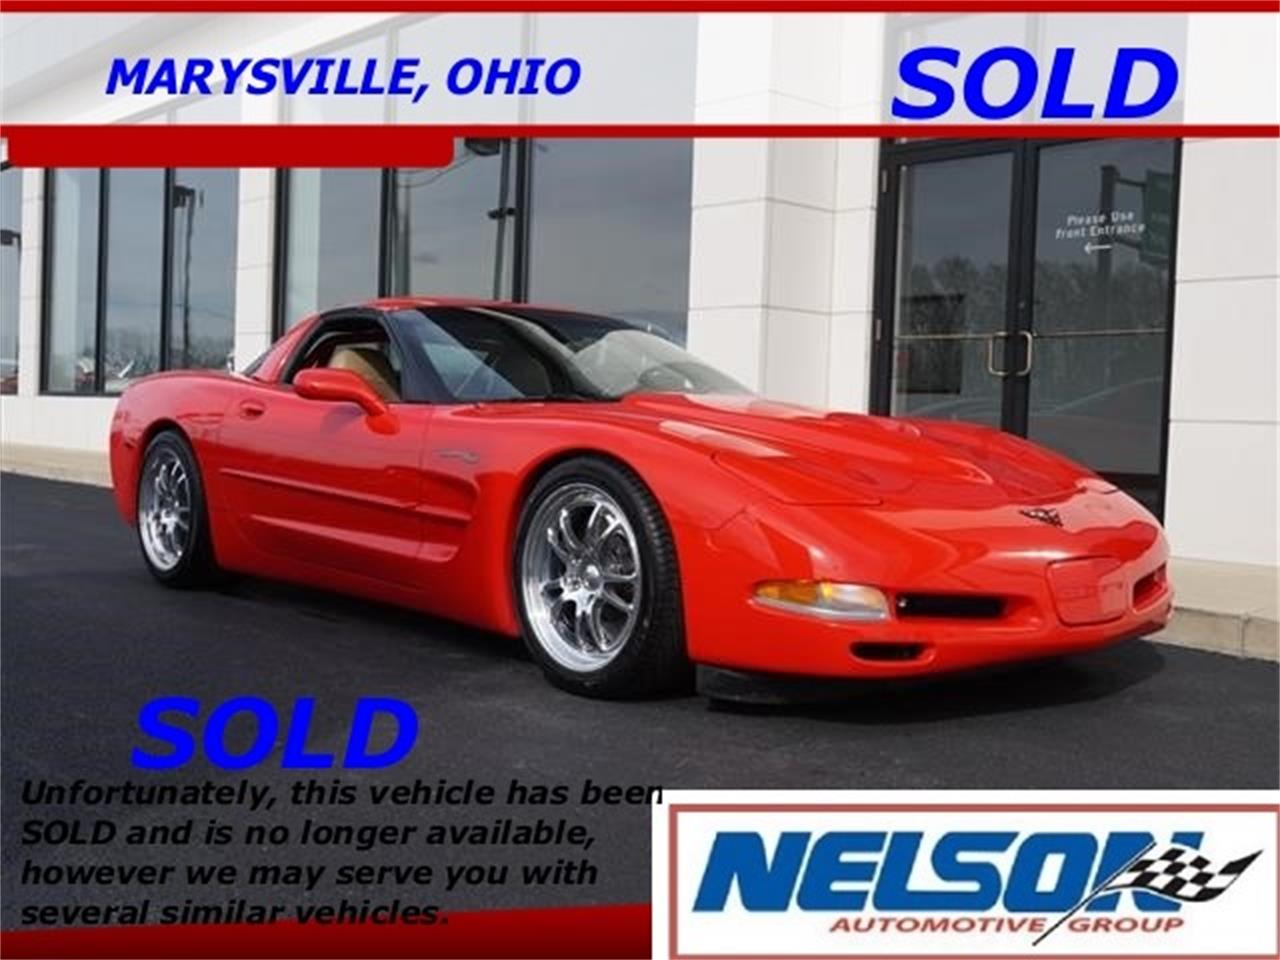 Large Picture of 1998 Corvette located in Marysville Ohio - $34,999.00 Offered by Nelson Automotive, Ltd. - KKOM